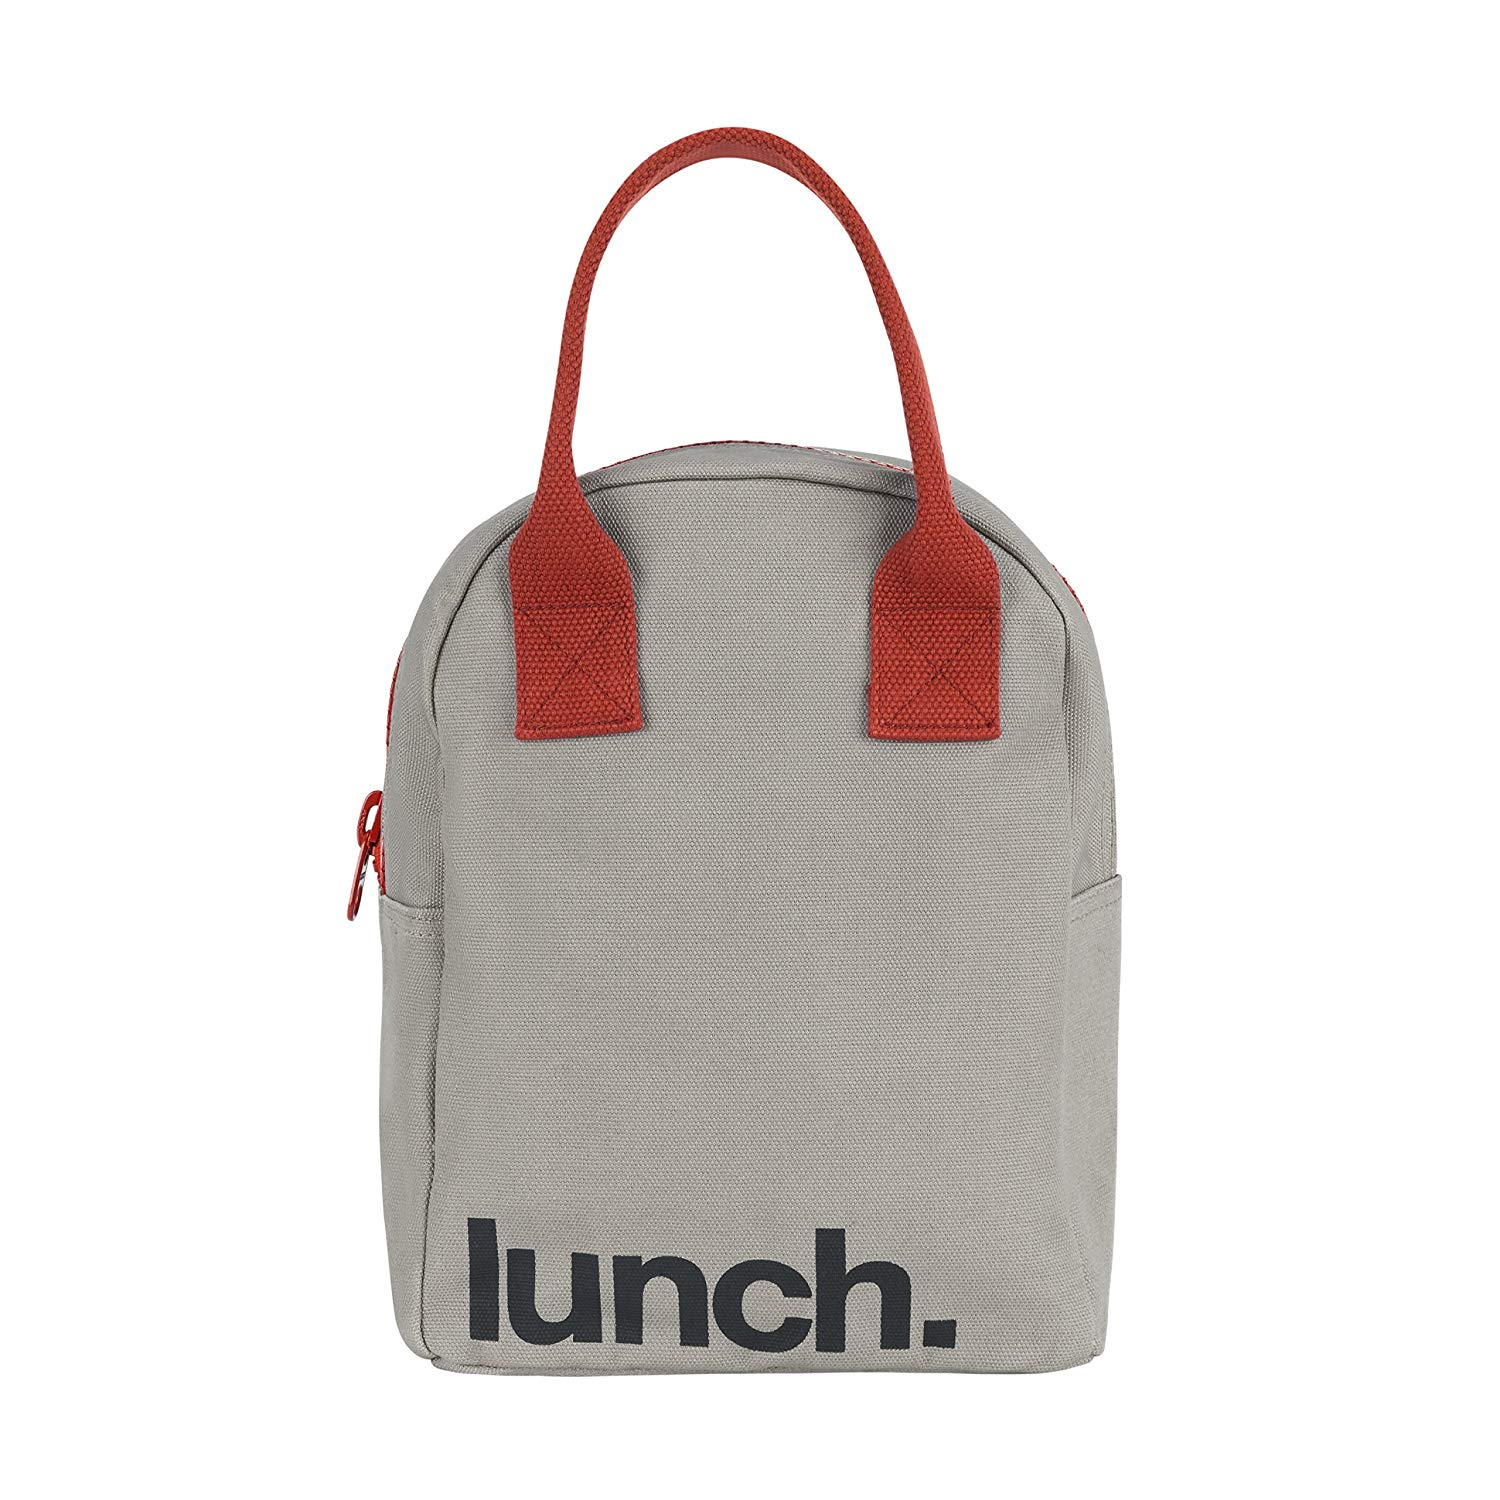 Lunch Bags for Women Fluf